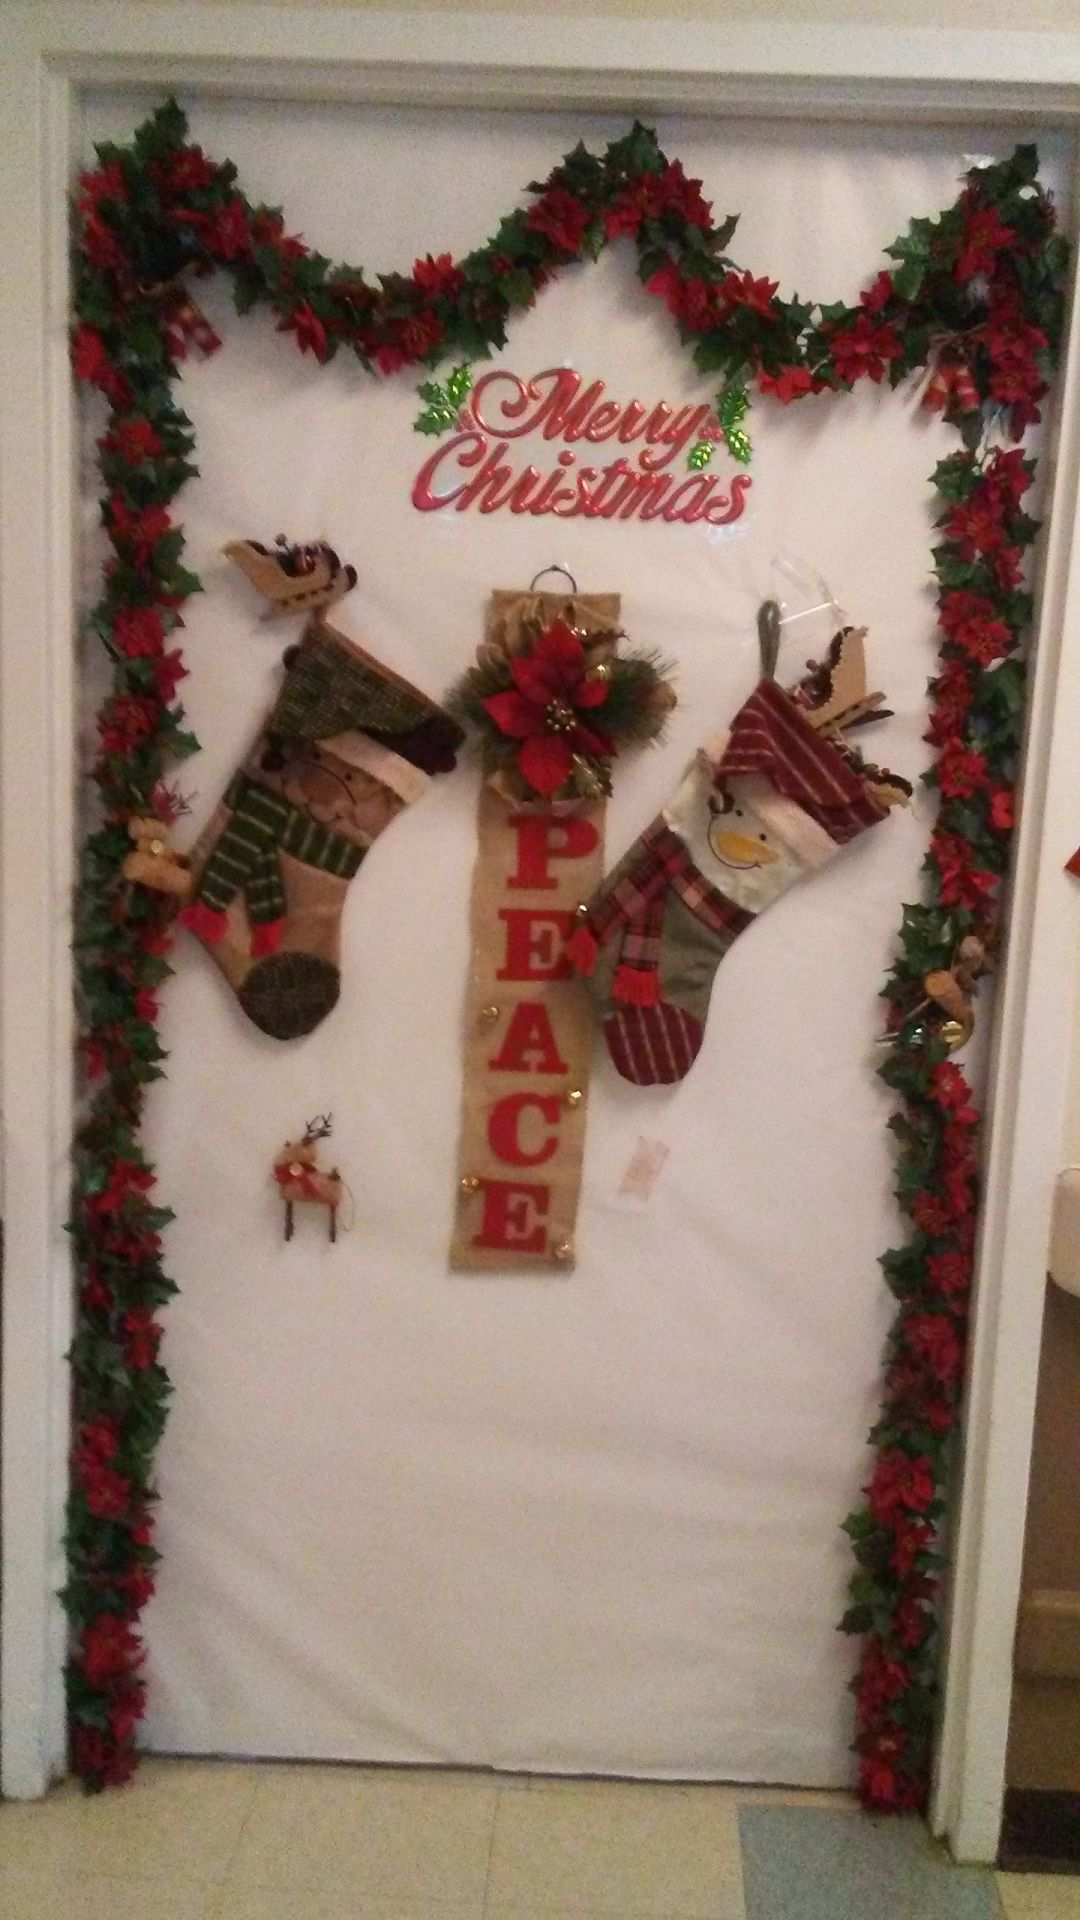 door decoration contest winners announced